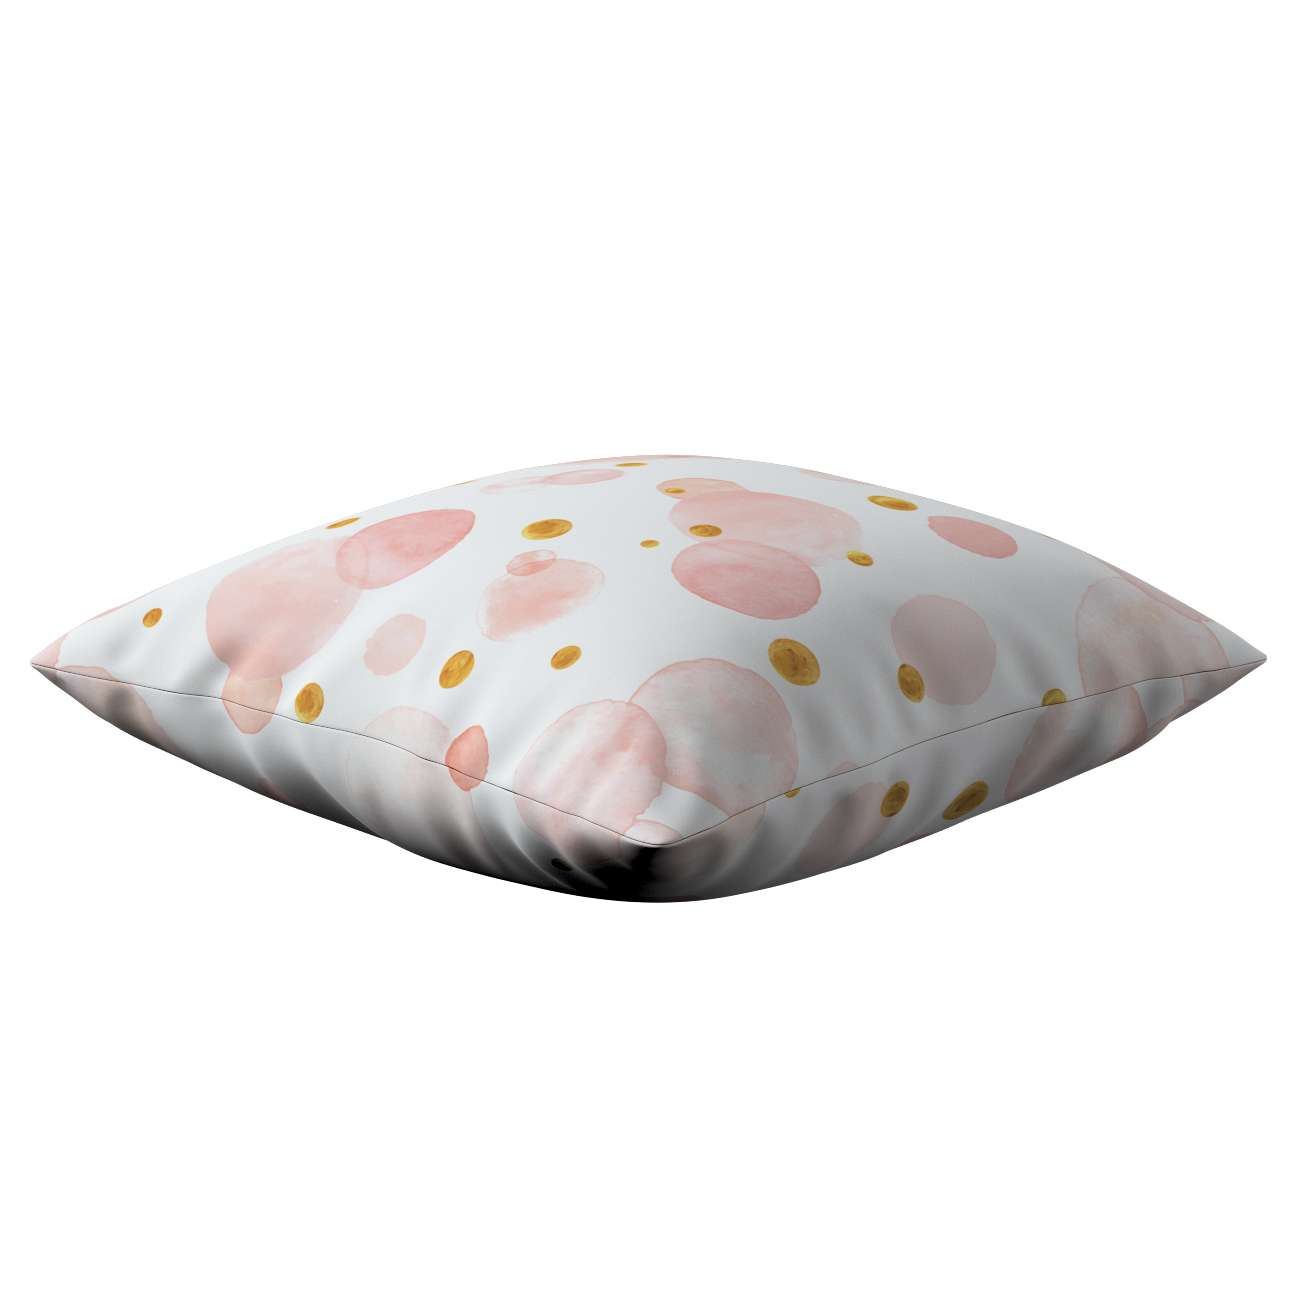 Milly cushion cover in collection Magic Collection, fabric: 500-13